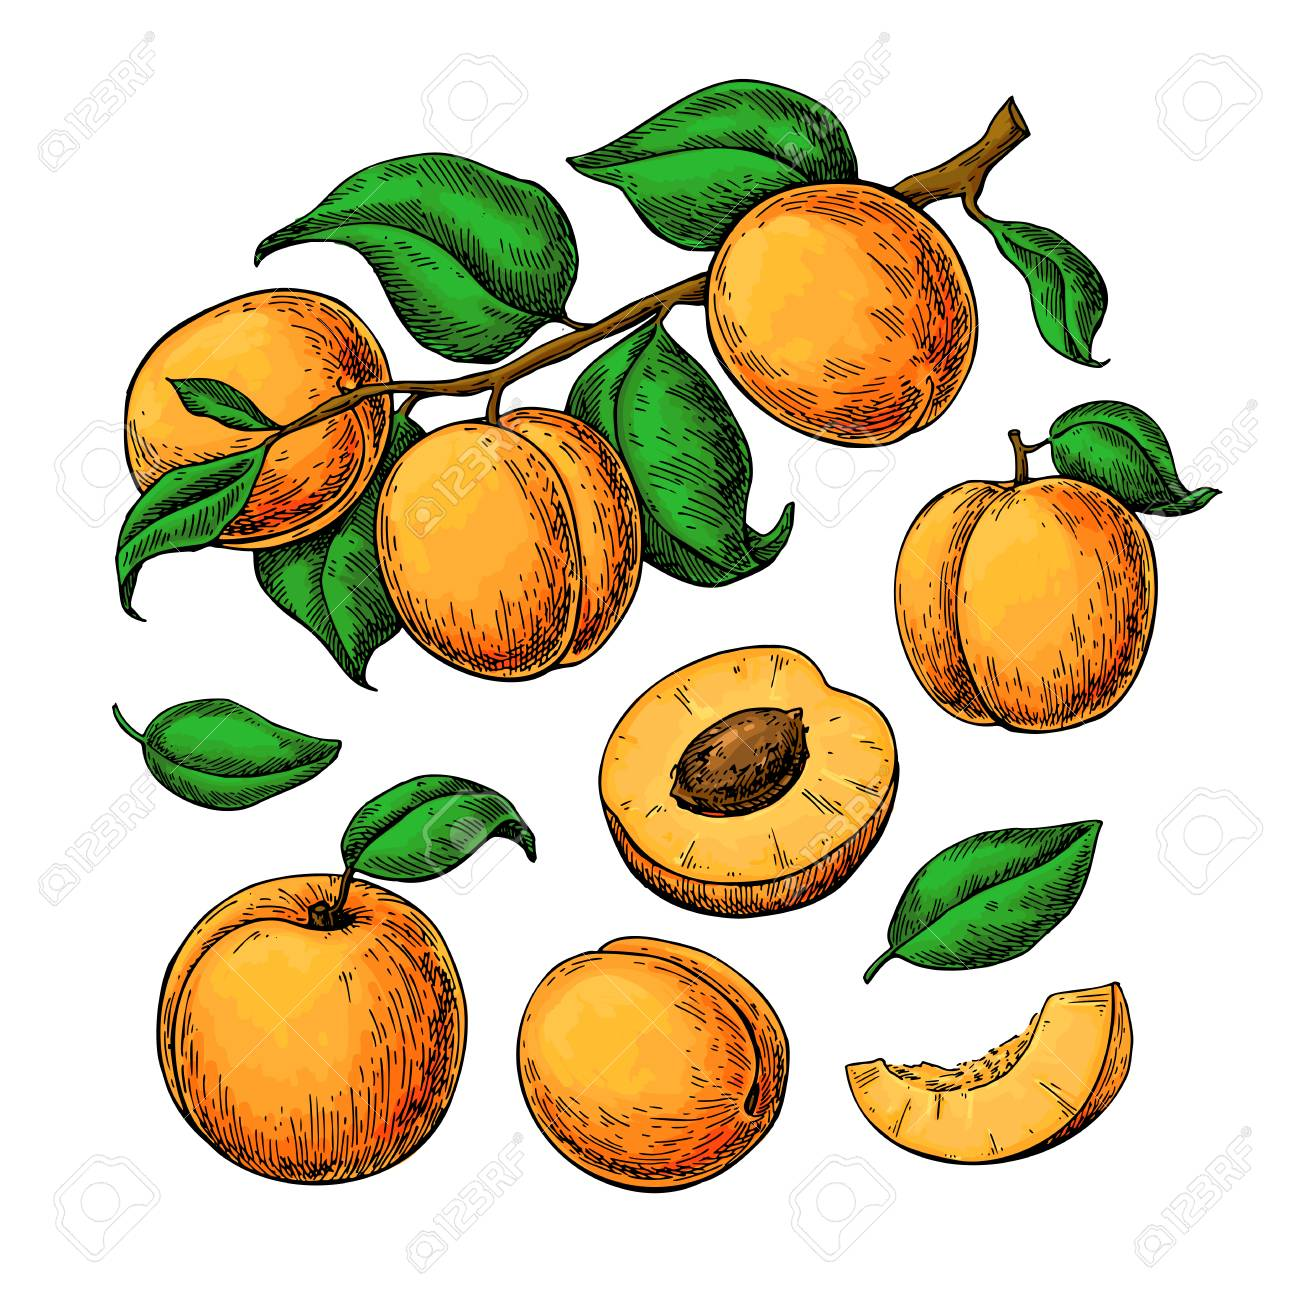 Apricot vector drawing set. Hand drawn fruit, branch and sliced pieces. Summer food illustration. Detailed vegetarian sketch. Great for label, poster, print, menu, packaging design - 99636383